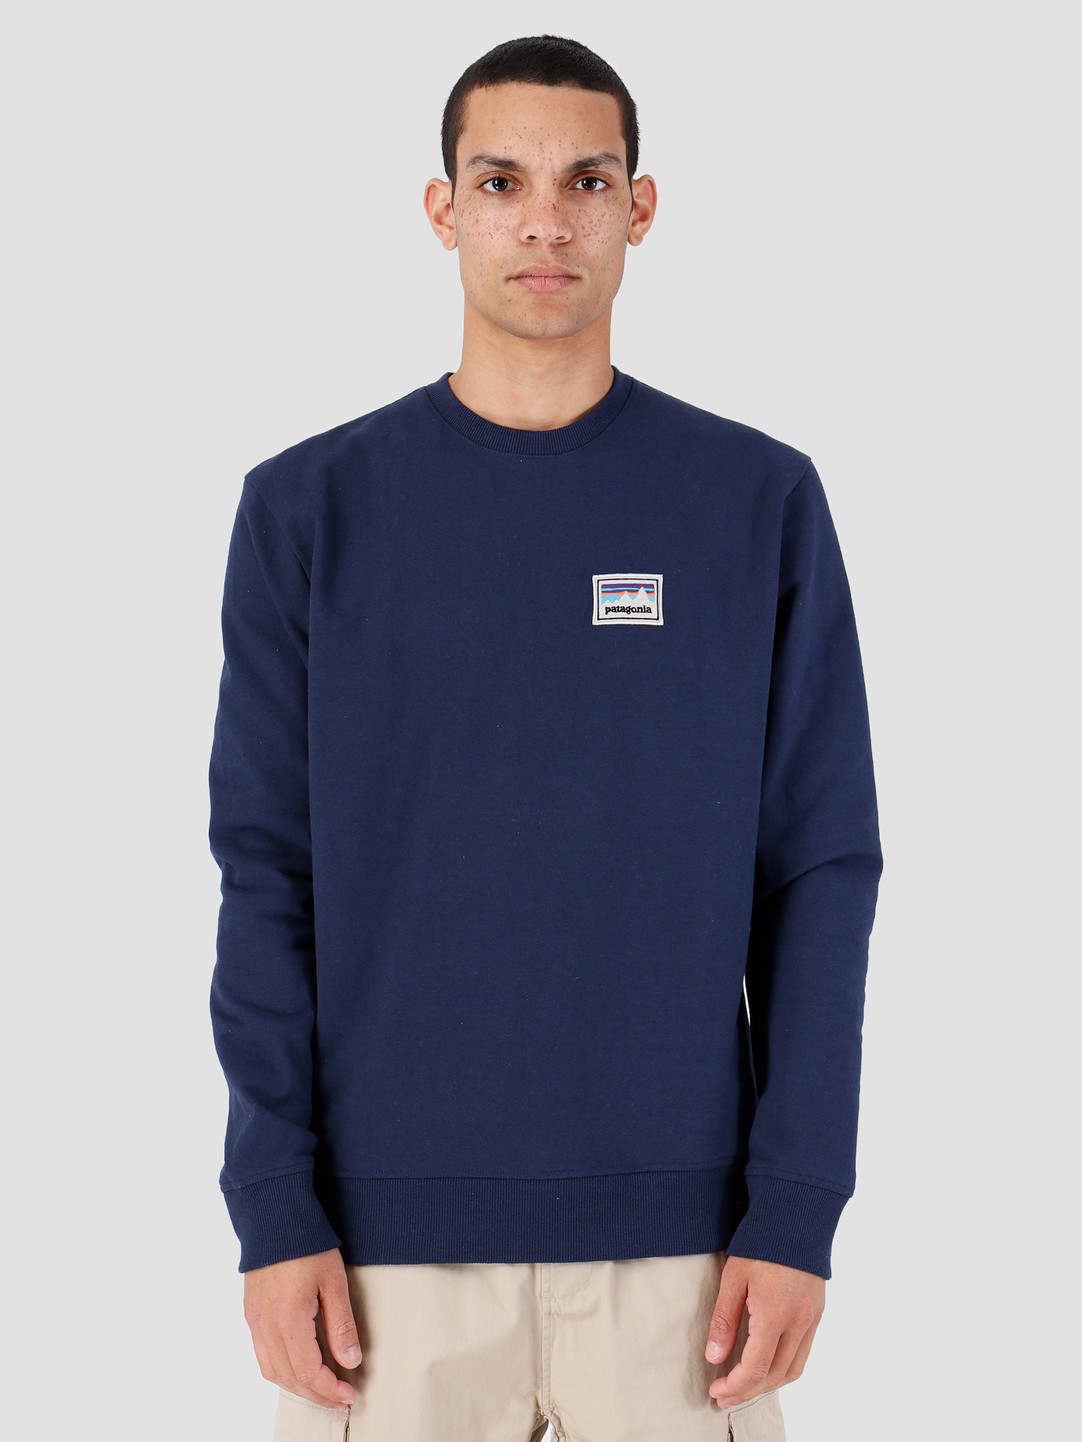 Patagonia Patagonia Shop Sticker Patch Uprisal Crew Sweatshirt Classic Navy 39541